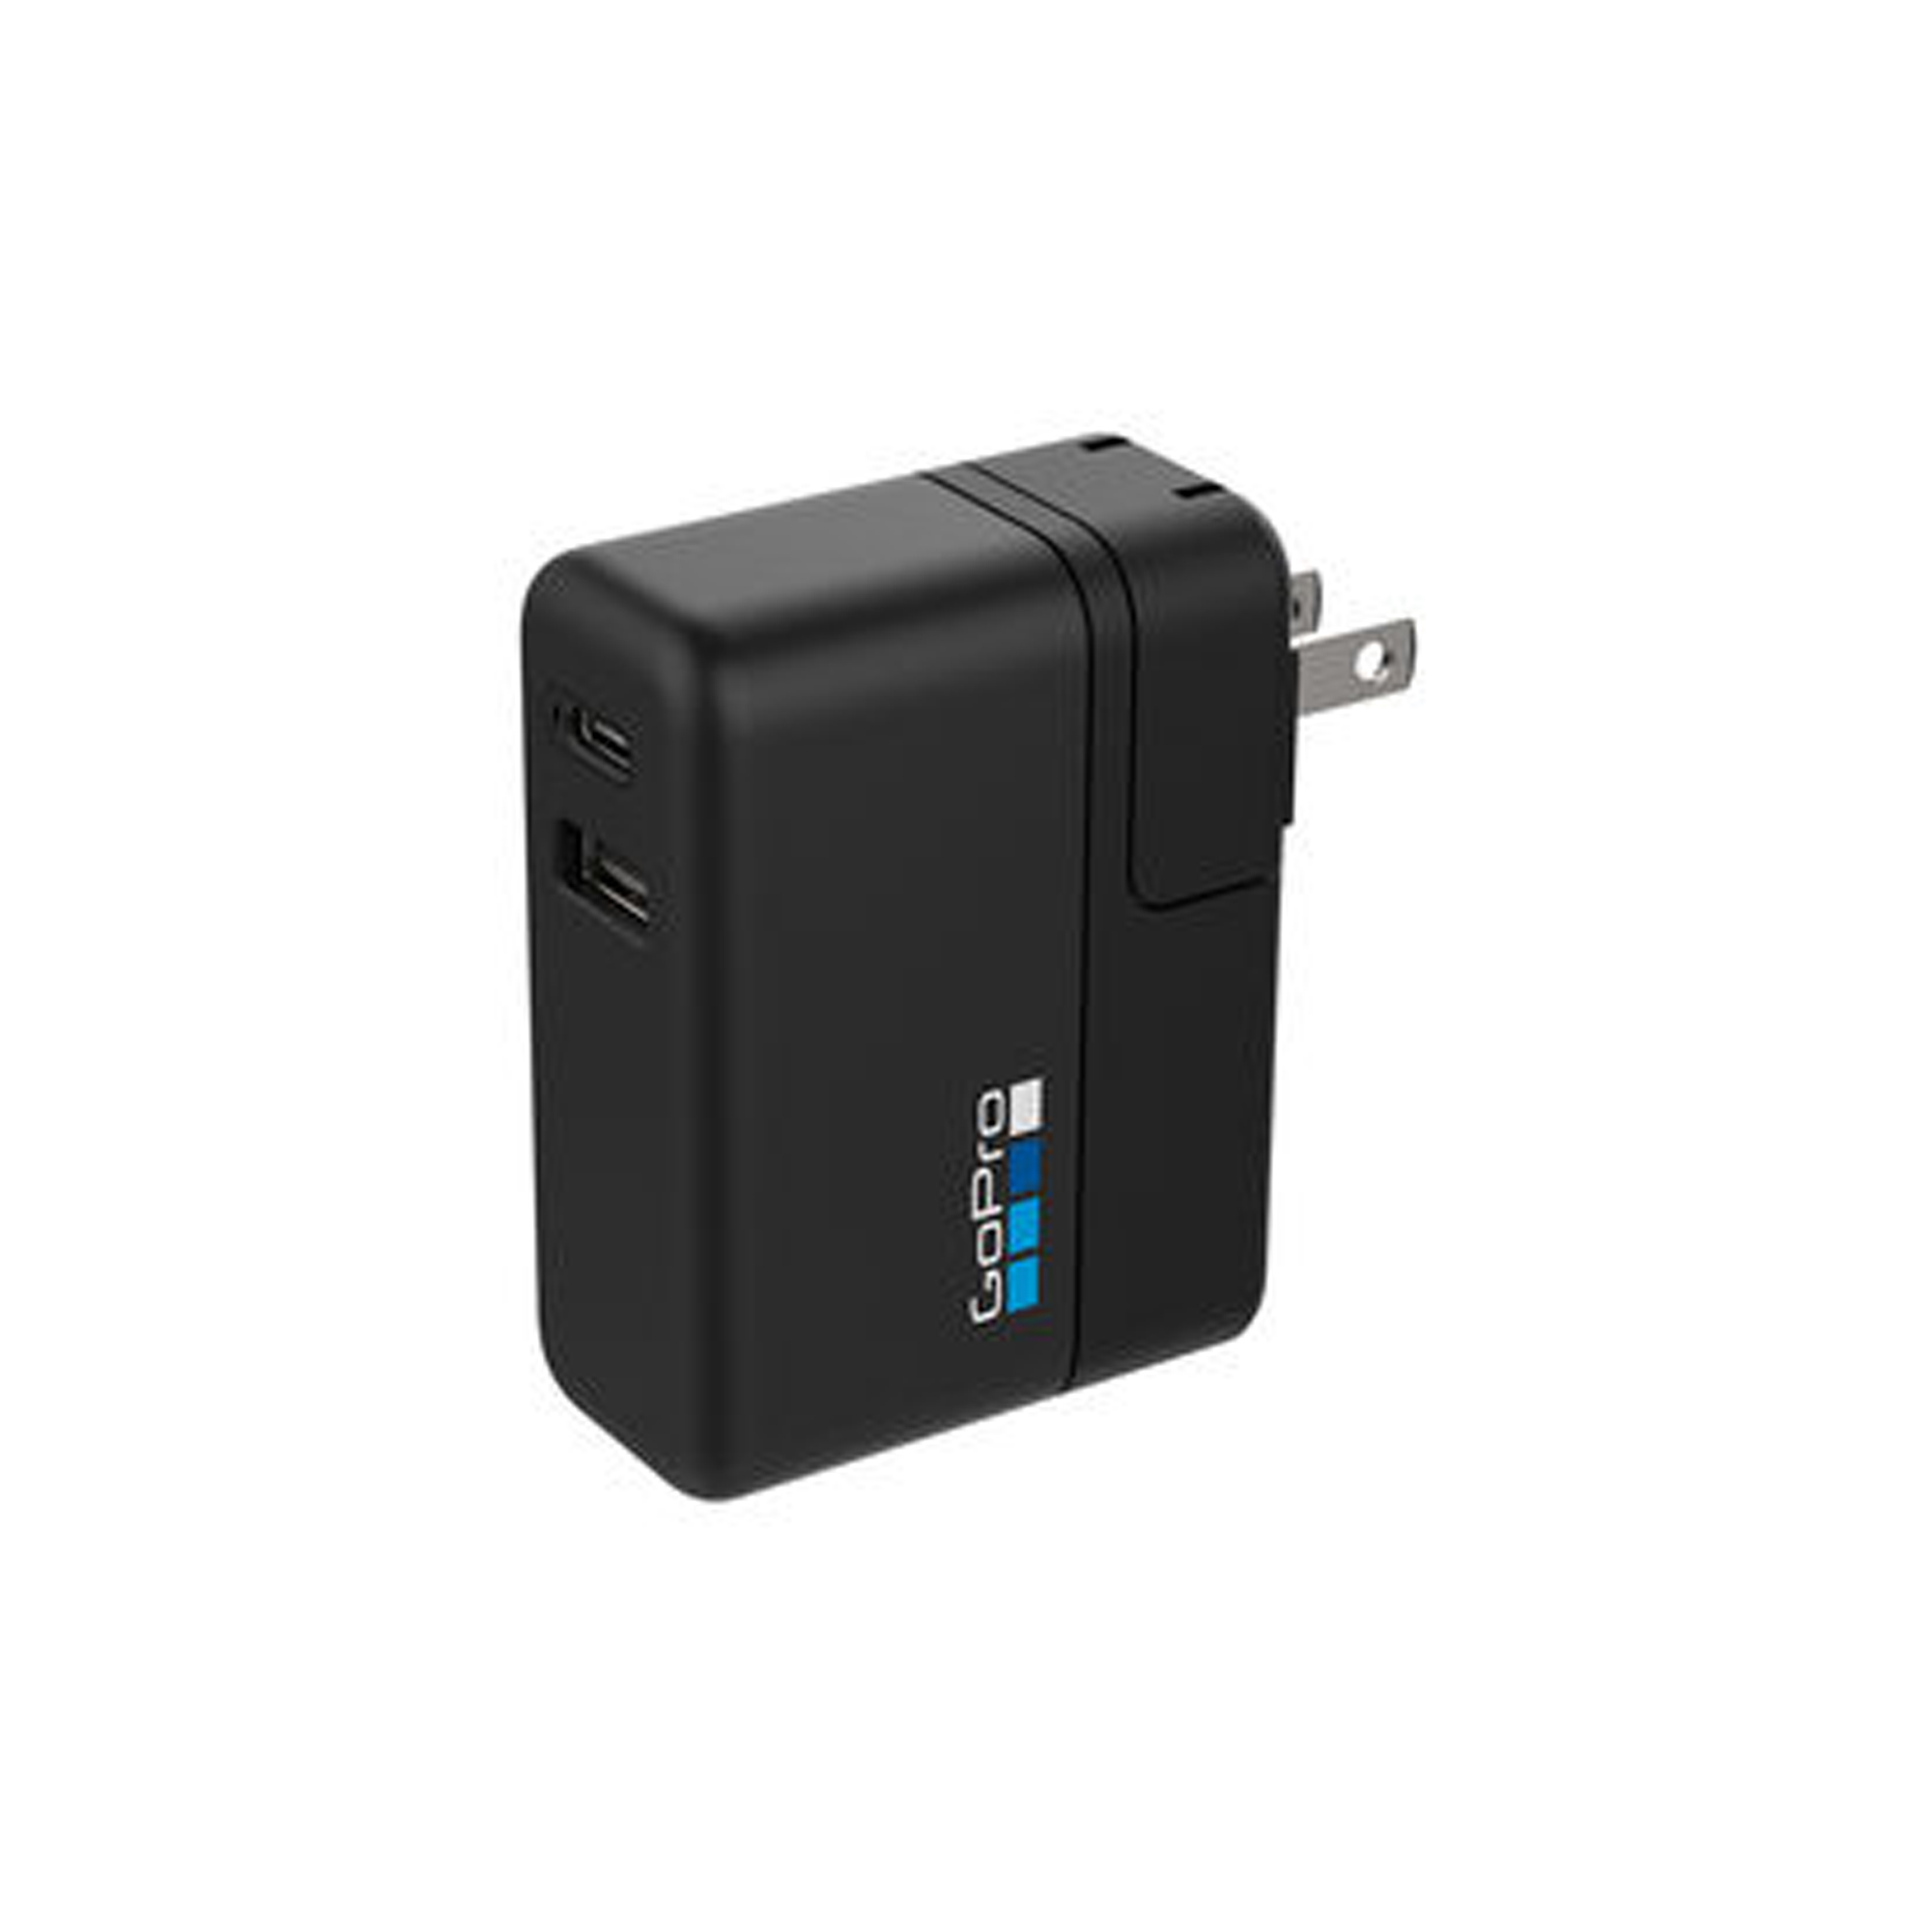 GOPRO SUPERCHARGER - INTERNATIONAL DUAL-PORT CHARGER (AWALC-002)